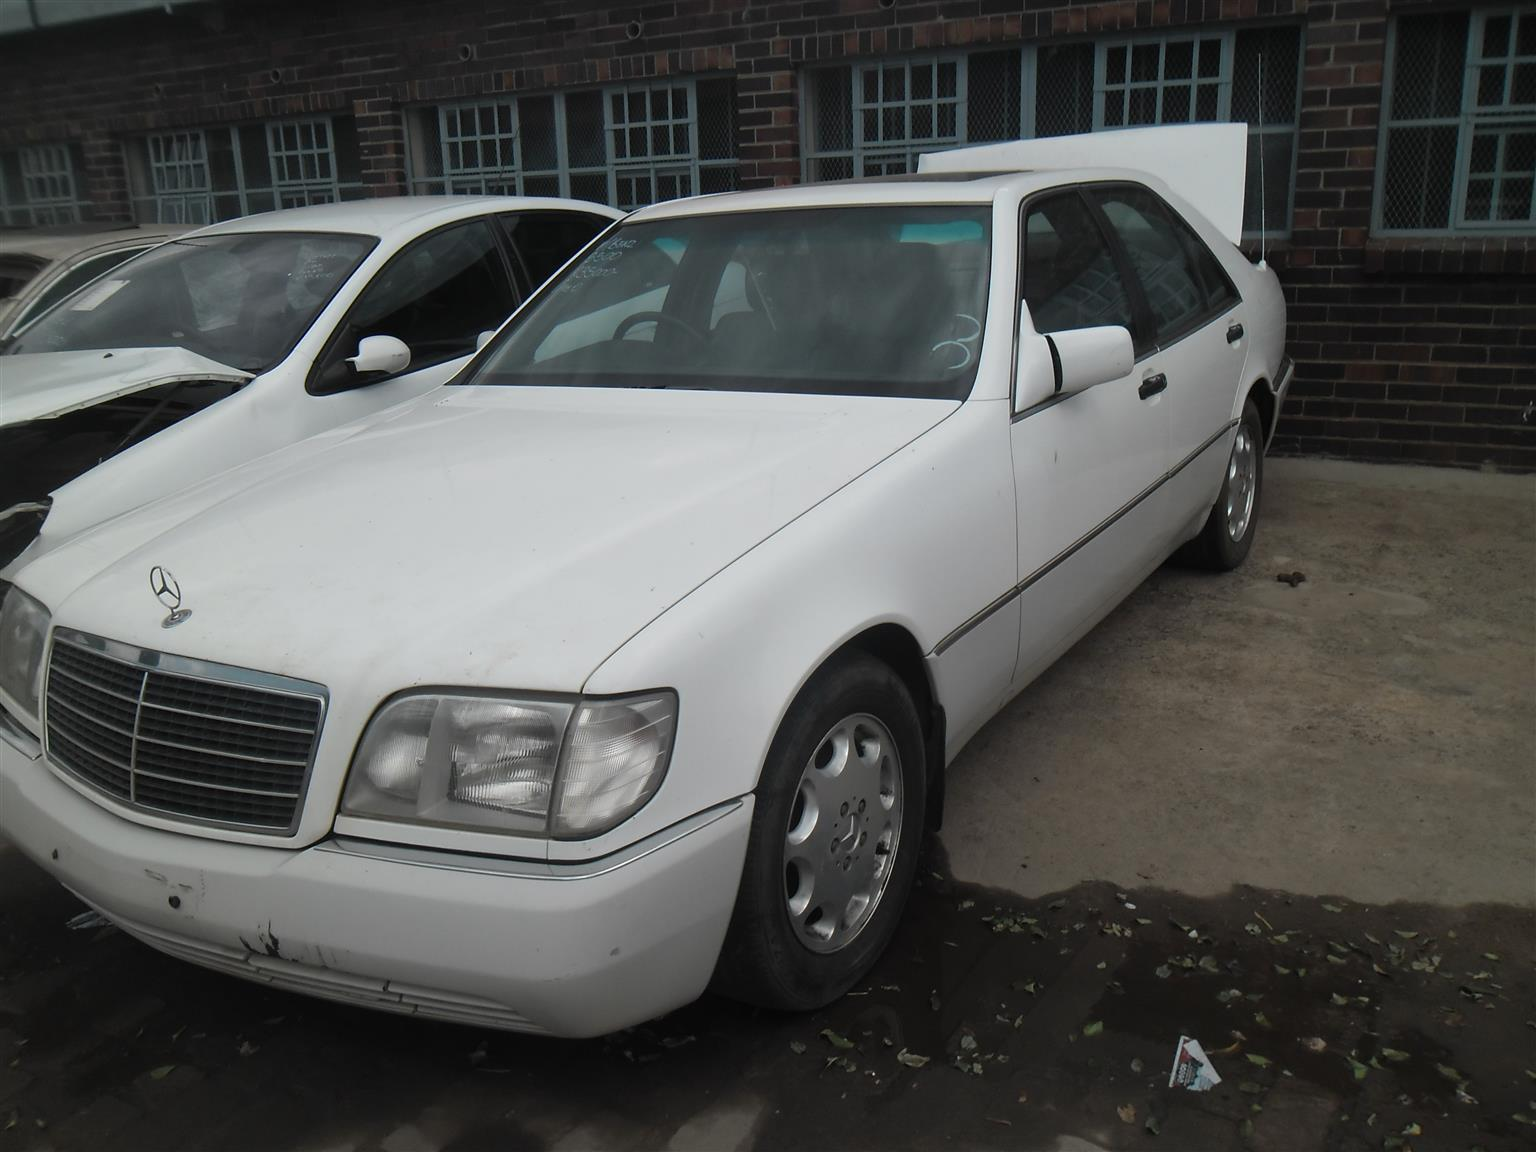 Mercedes benz s500 w140 stripping for spares gearbox for for Aftermarket parts mercedes benz